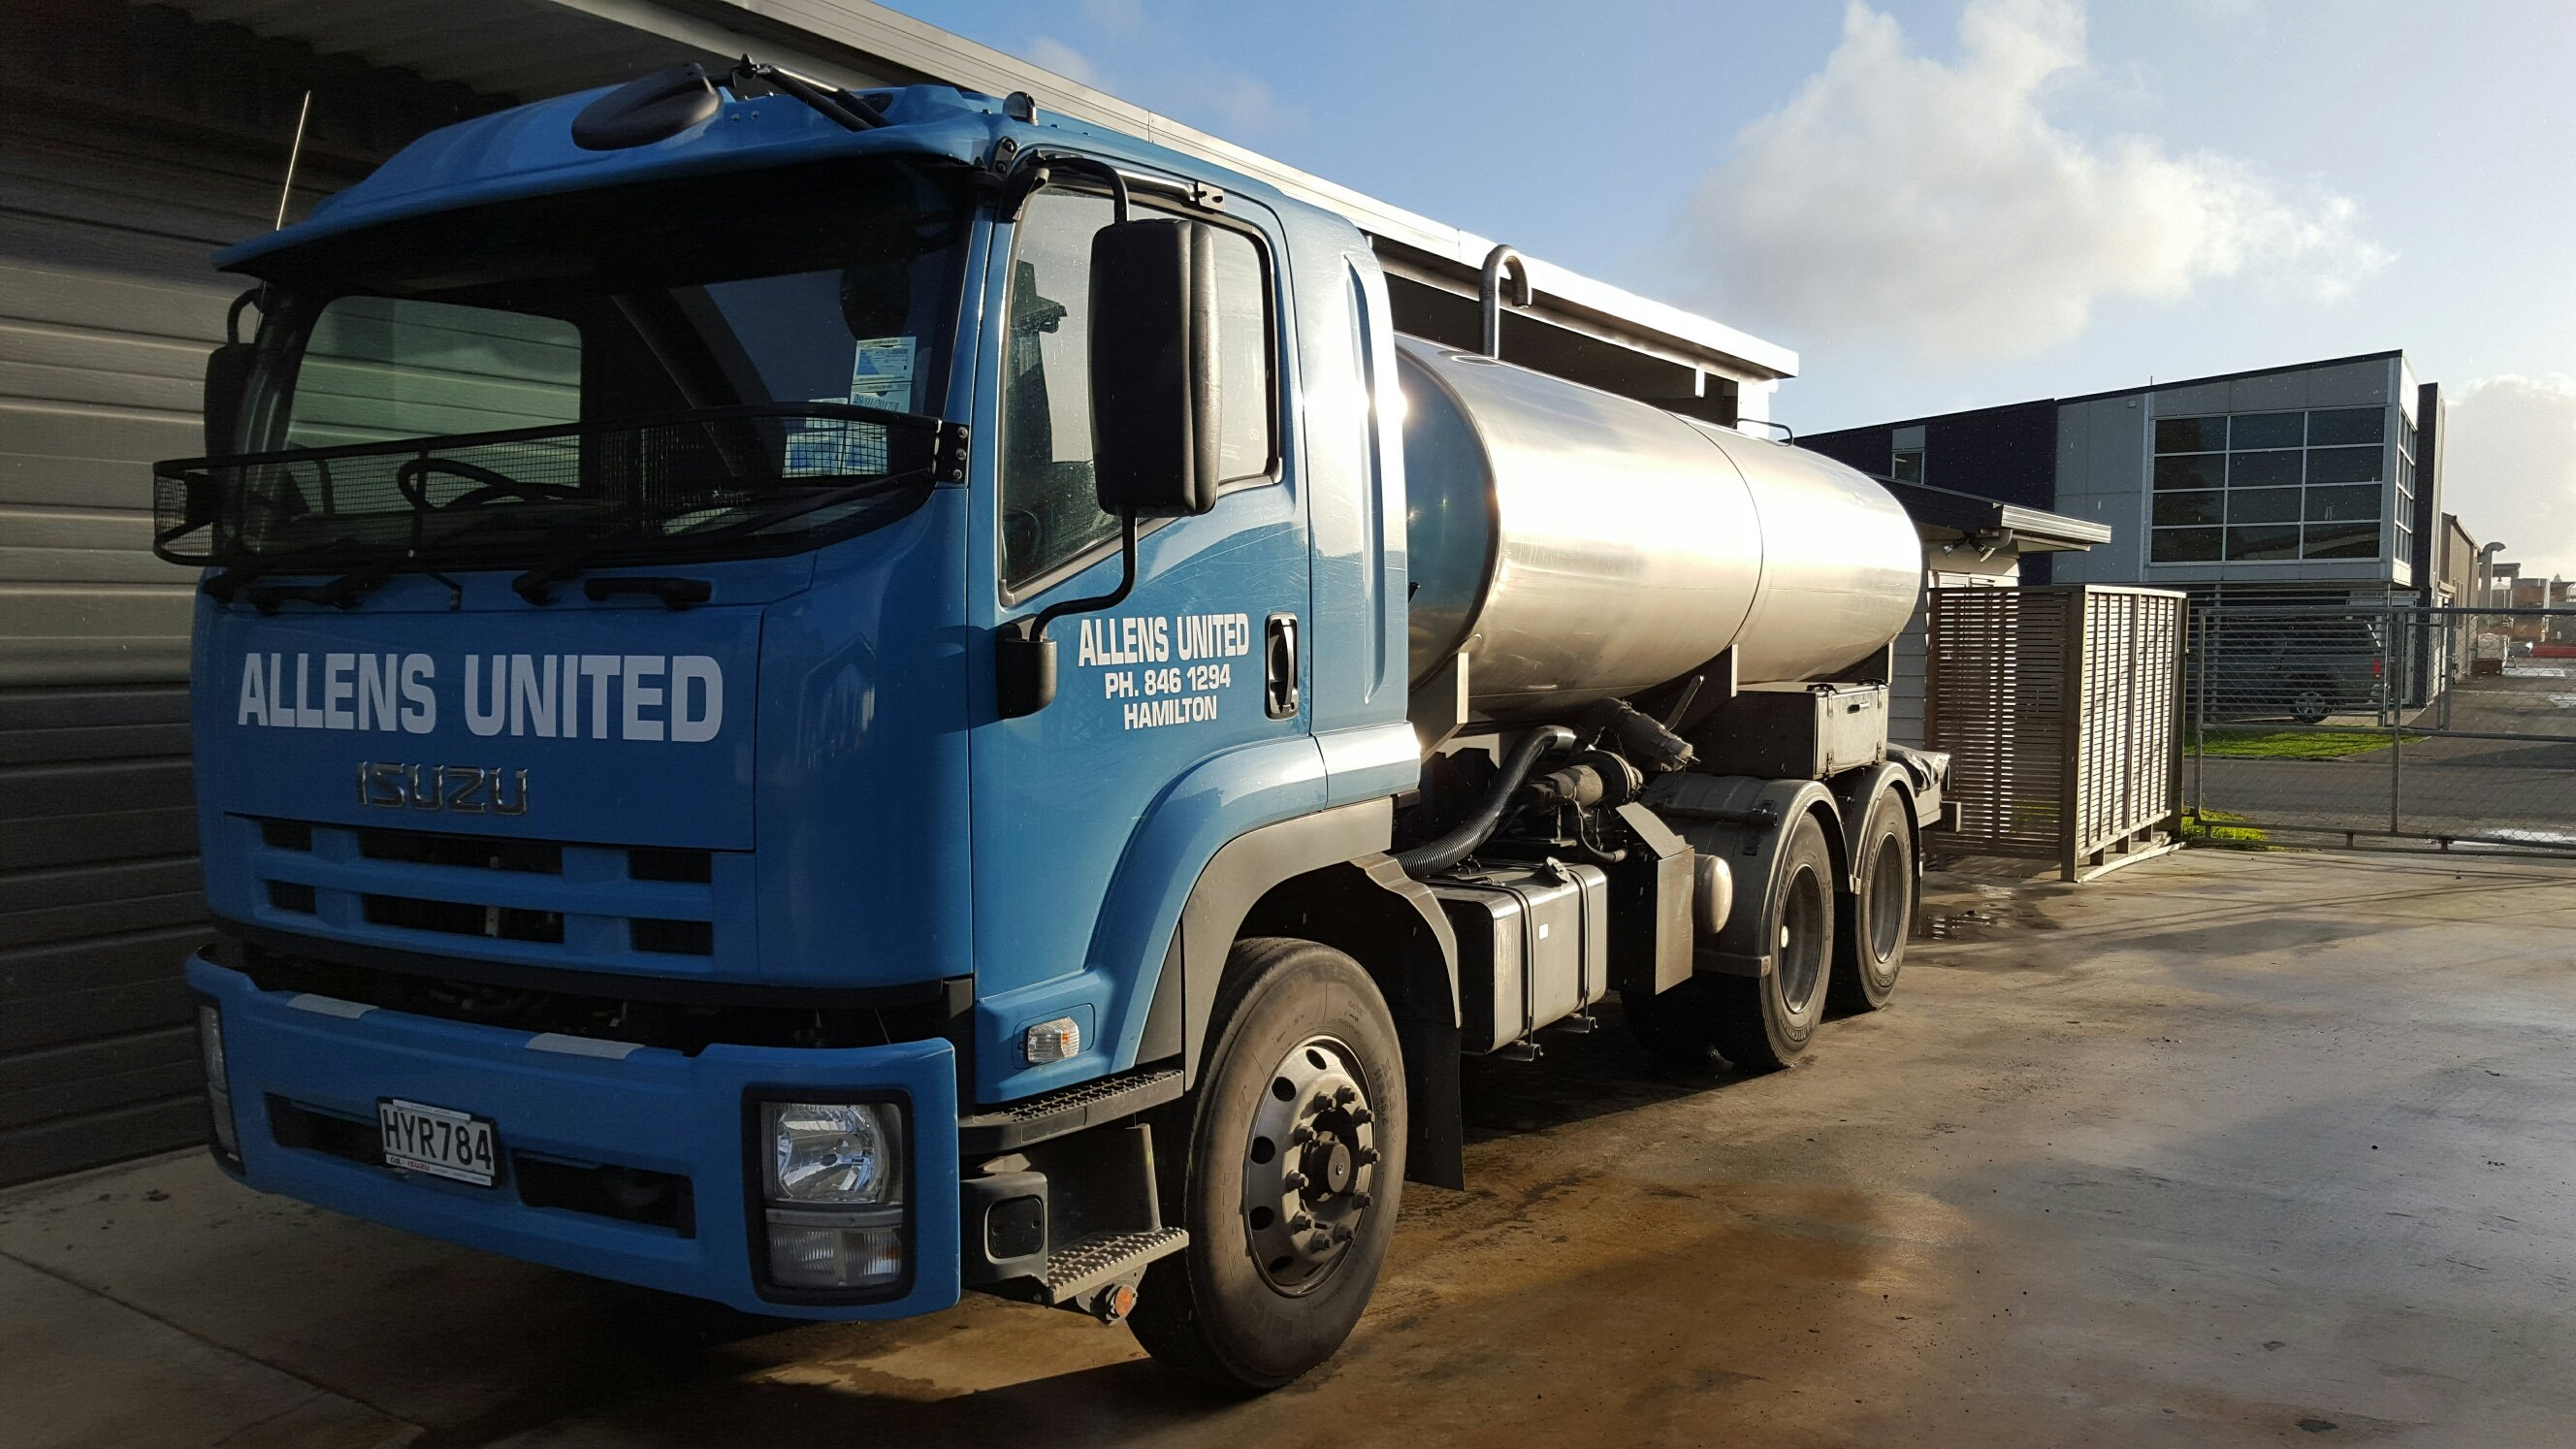 Equipment for domestic water delivery services